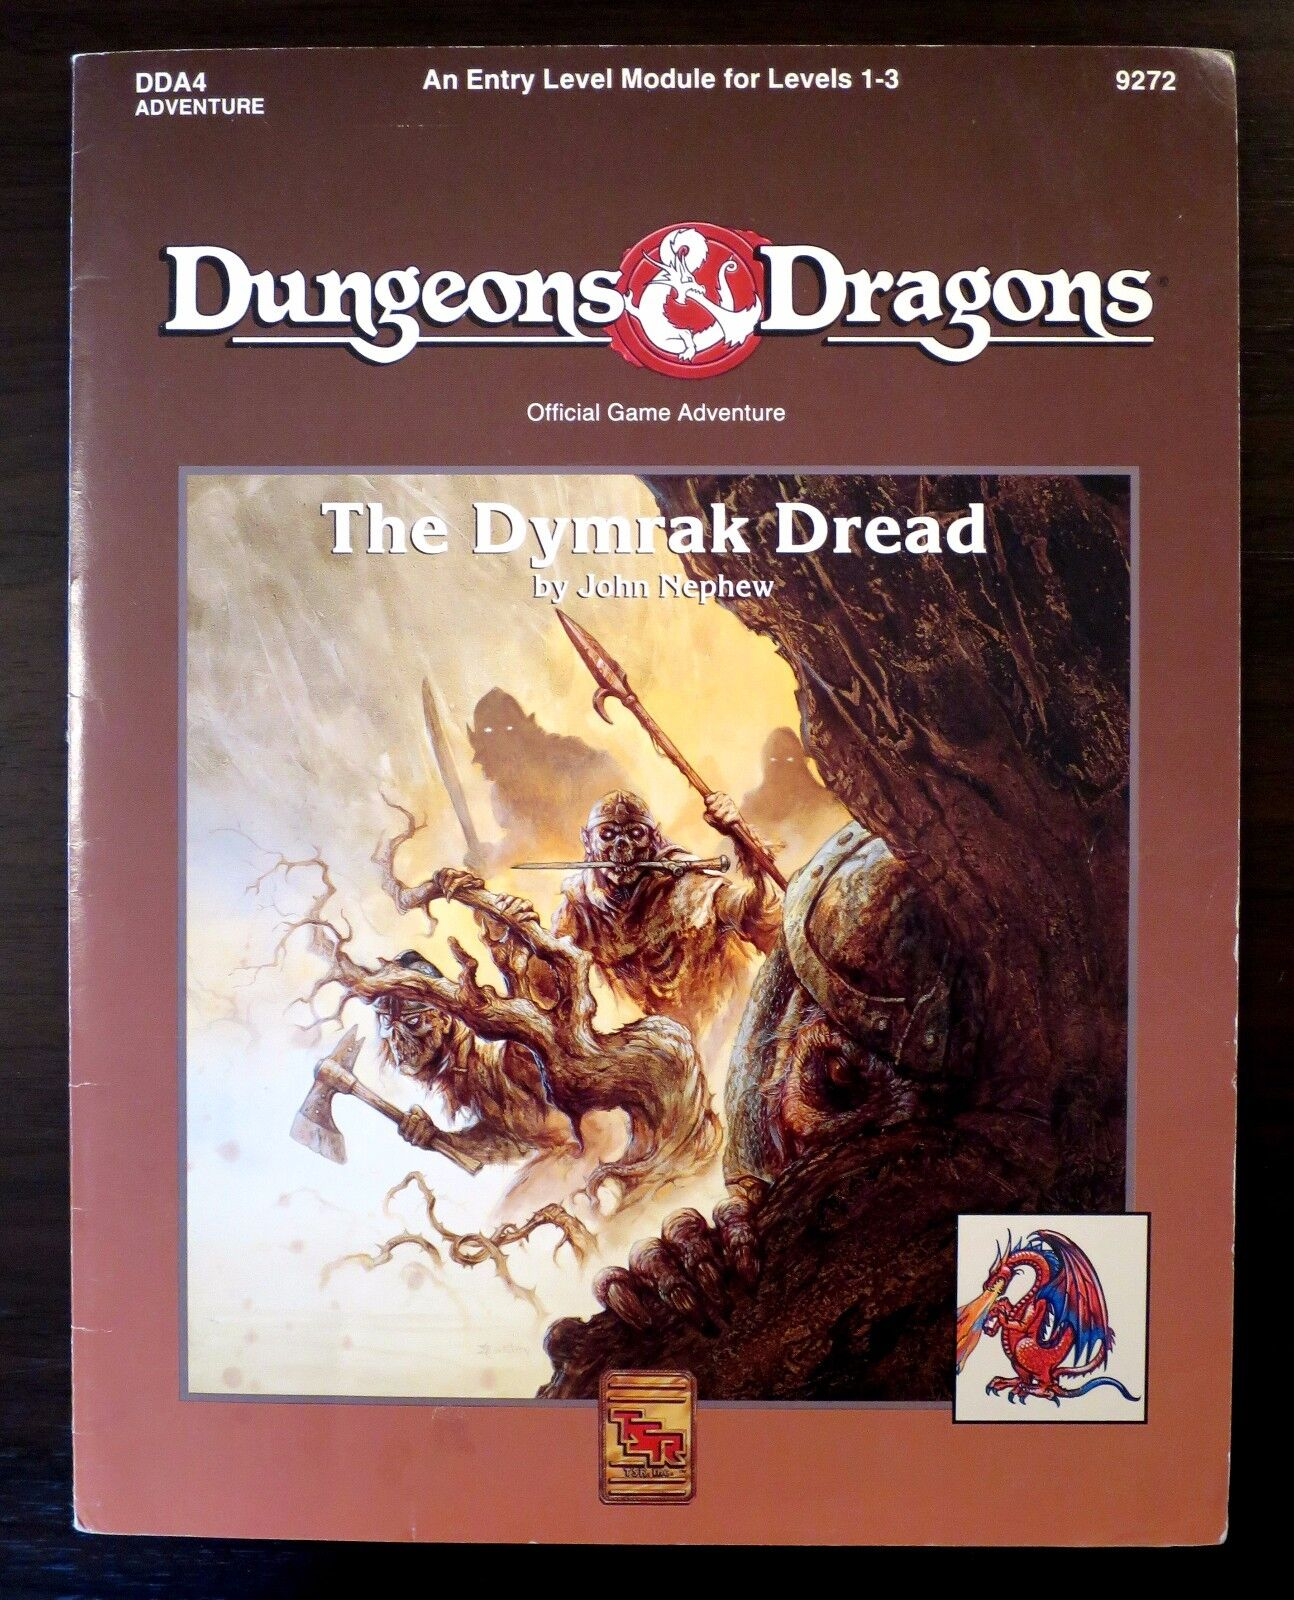 DDA4 The Dymrak Dread (includes map) - Dungeons & Dragons